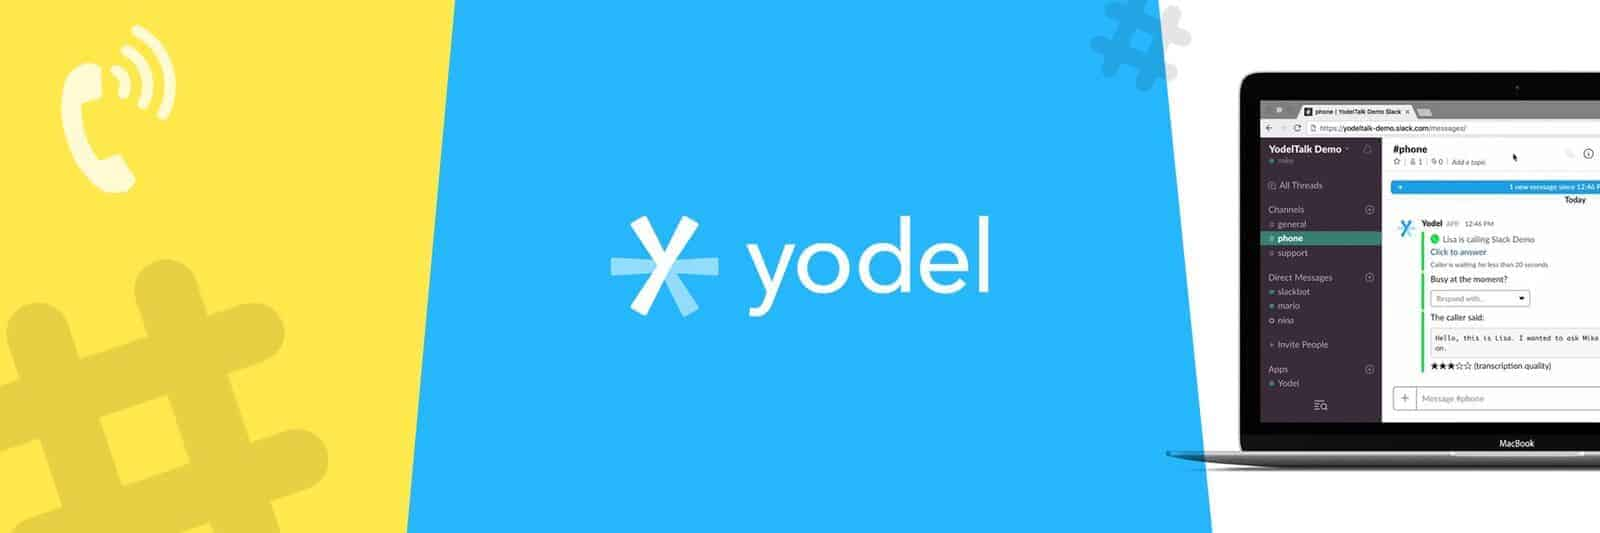 yodel_preview